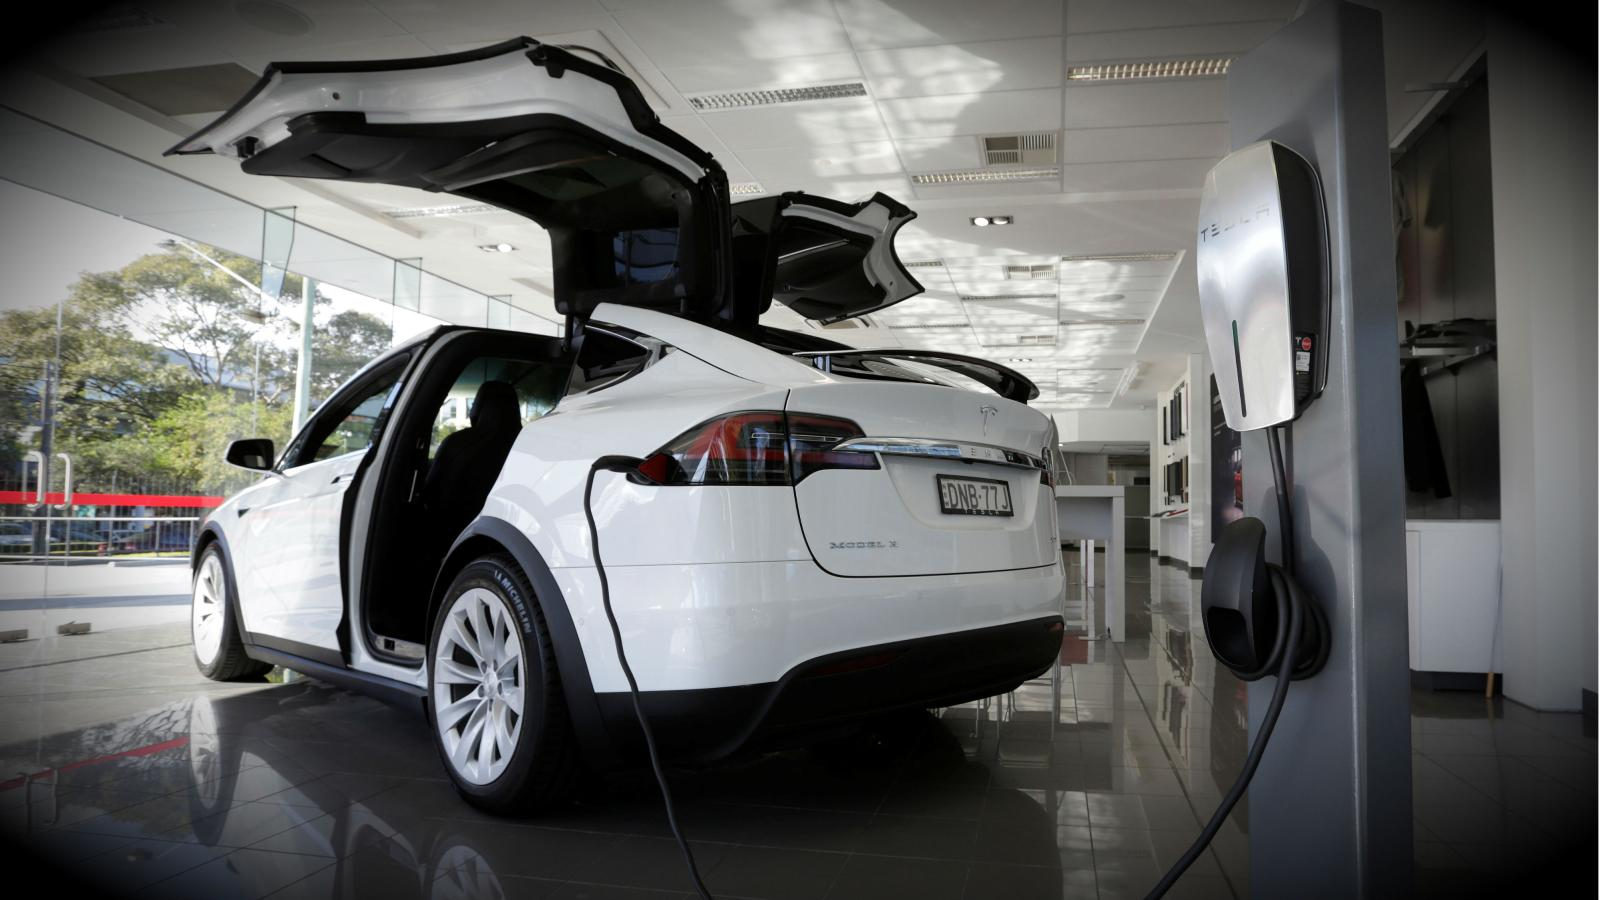 medium resolution of many homes aren t ready to charge electric cars without blowing the fuse